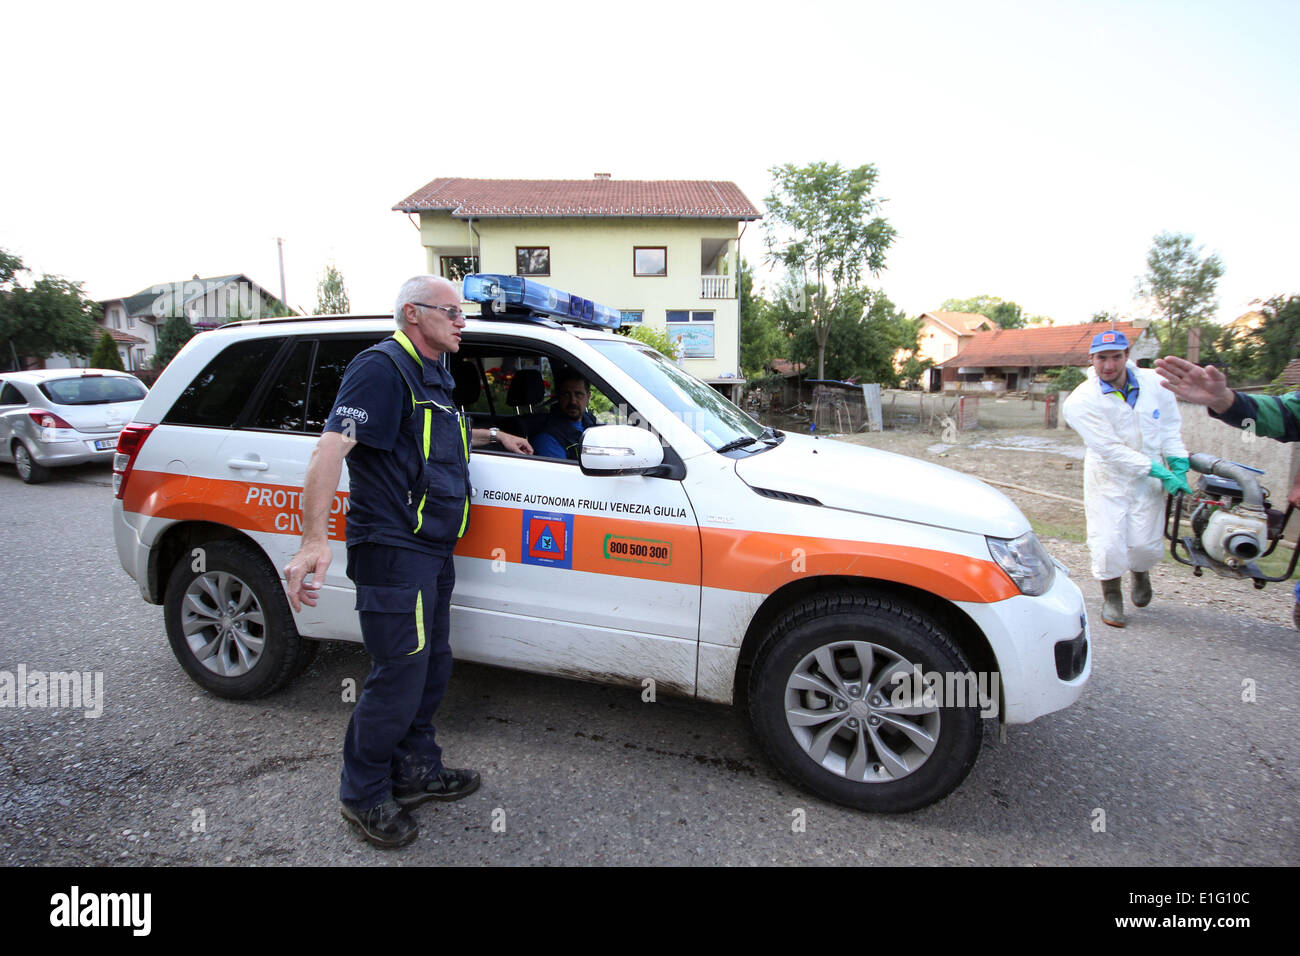 Bijeljina. 3rd June, 2014. An expert helps with cleaning and disinfection efforts in Bijeljina in northeastern Bosnia and Herzegovina (BiH), on June 3, 2014. BiH was hit last month by the worst flooding in 120 years. © Borislav Zdrinja/Xinhua/Alamy Live News - Stock Image